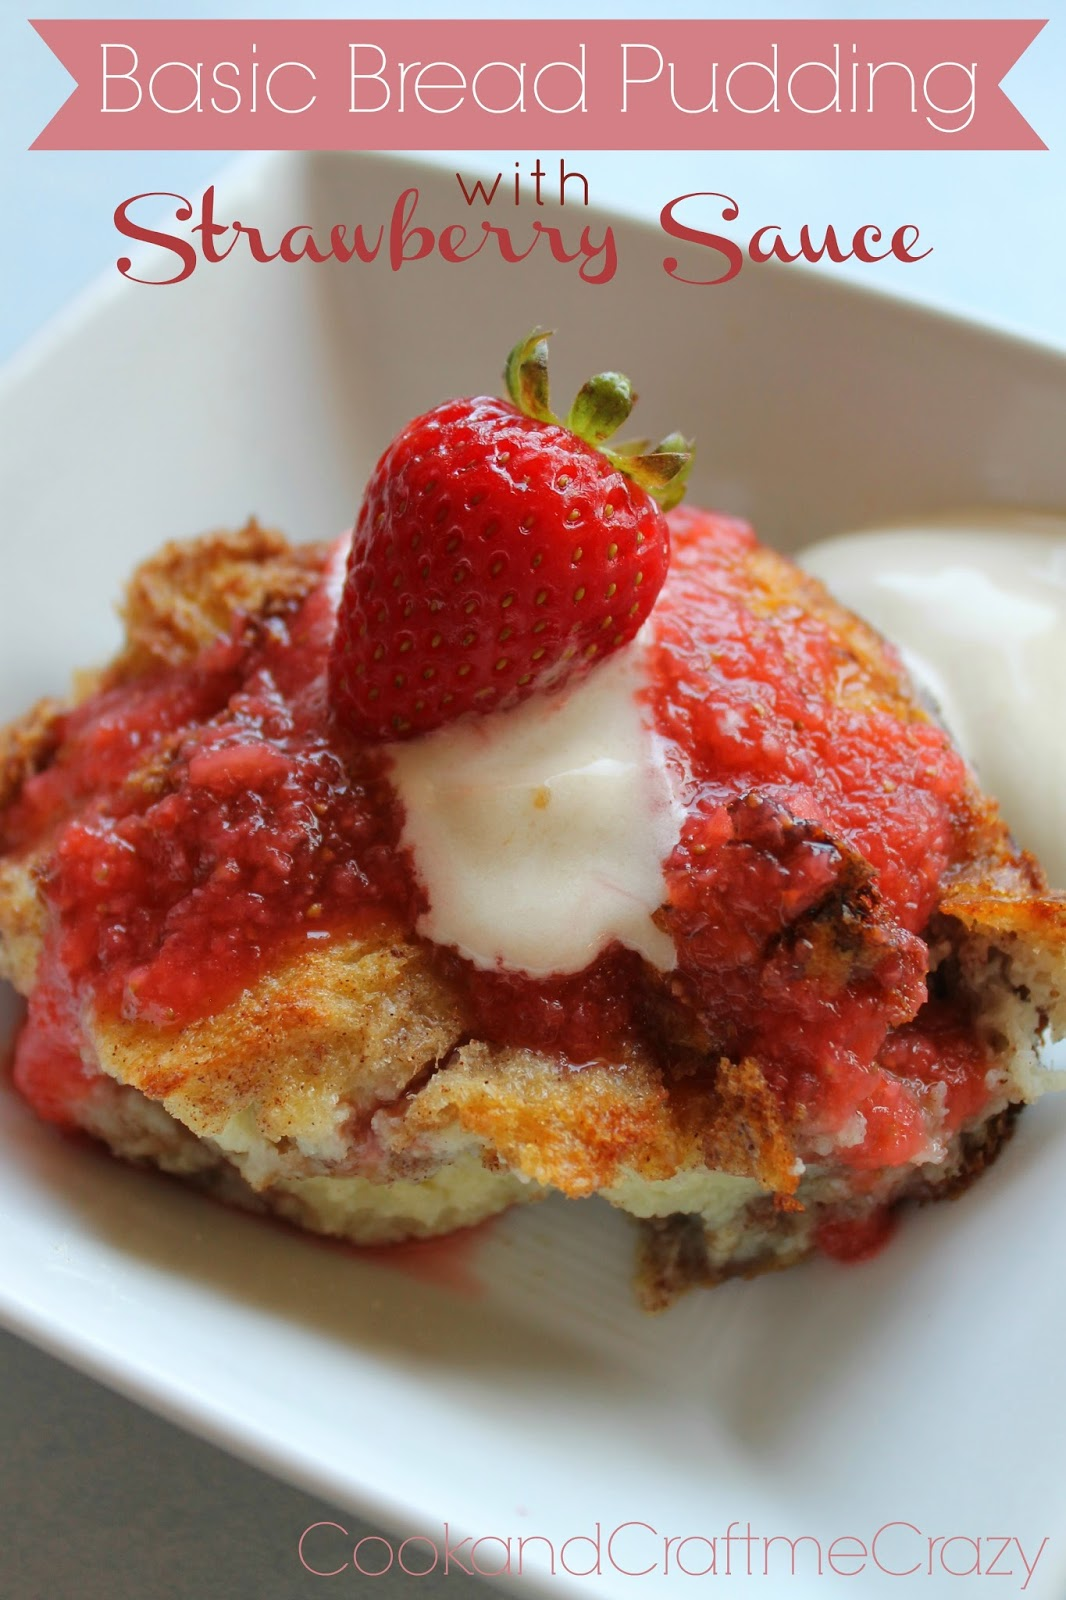 Cook and Craft Me Crazy: Basic Bread Pudding with Strawberry Sauce